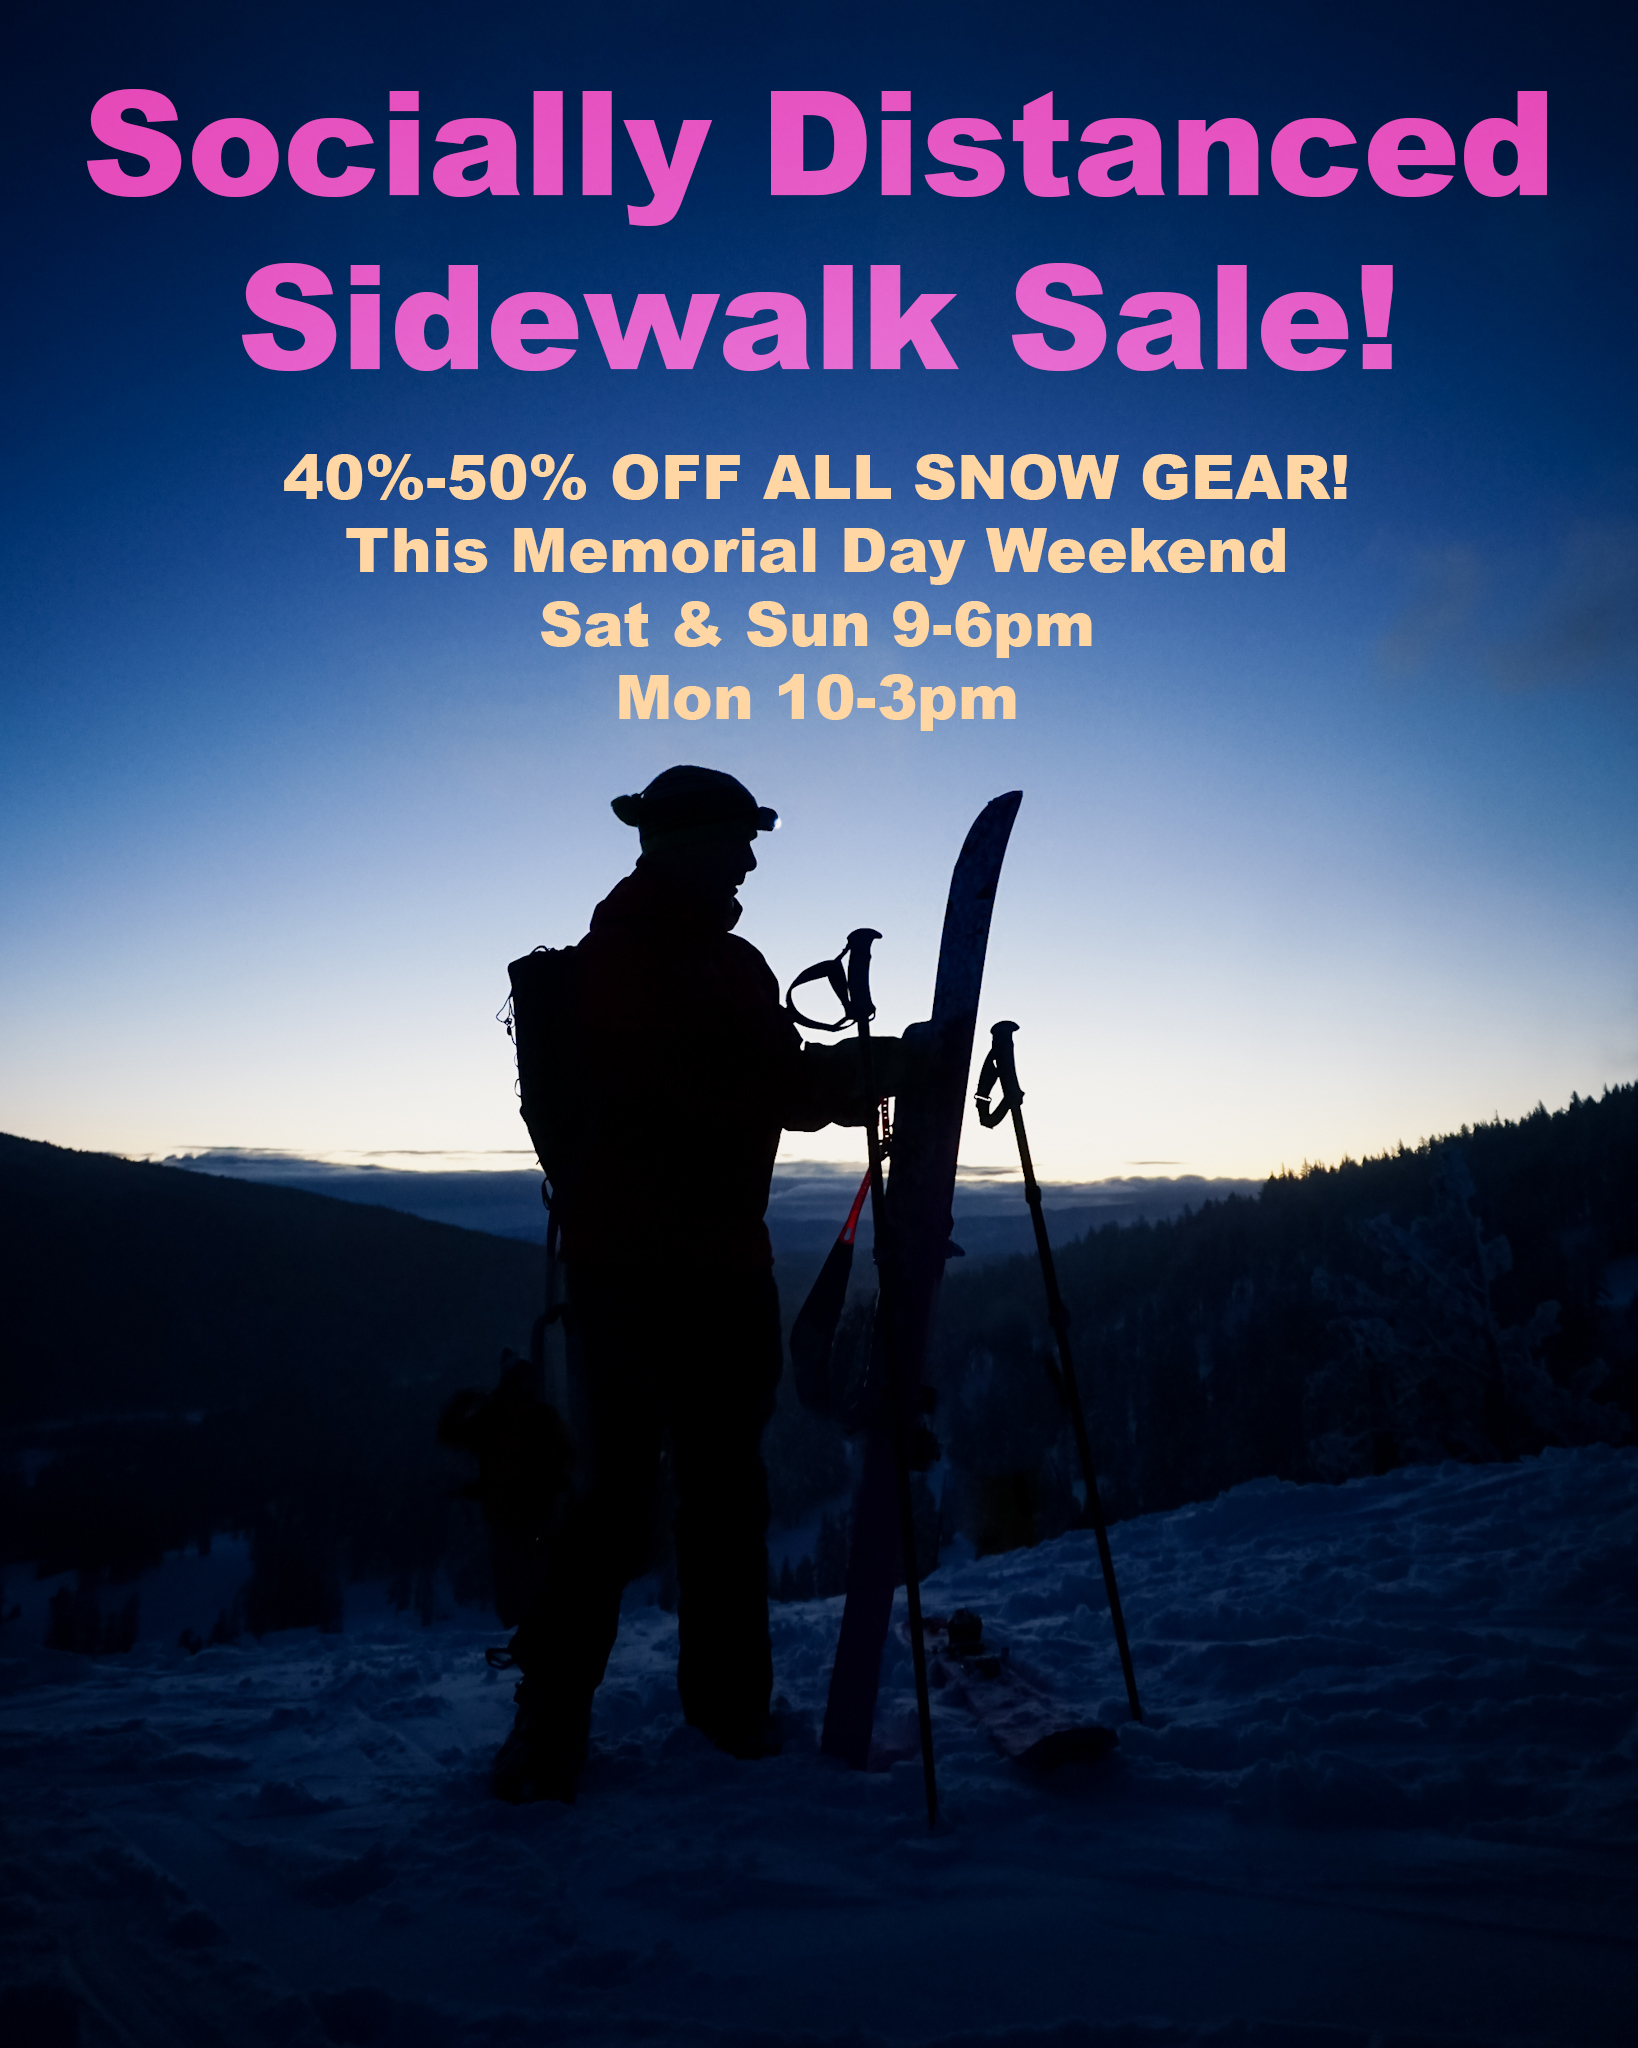 Socially Distanced Sidewalk Sale!